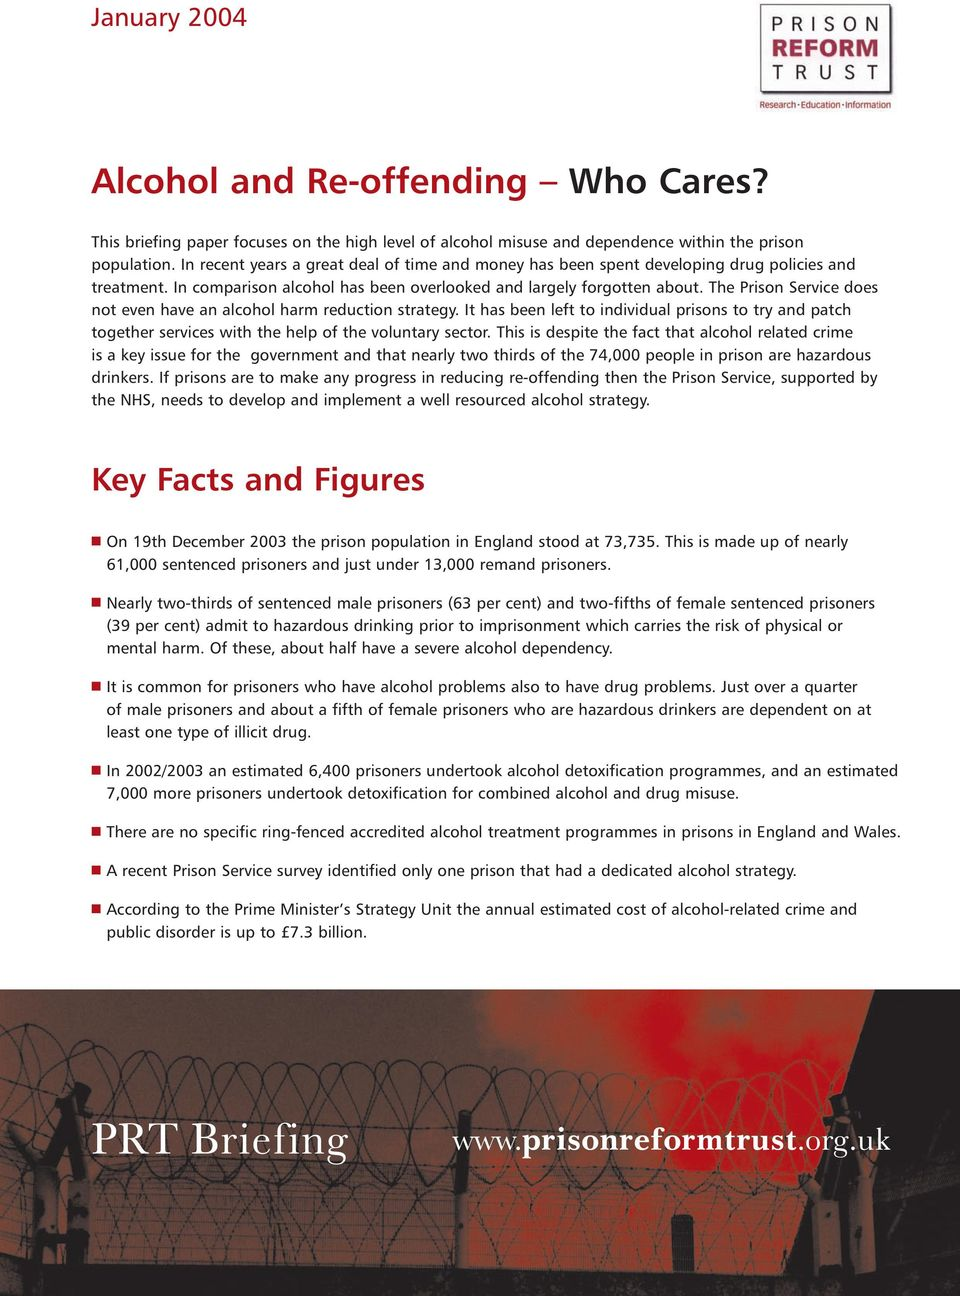 The Prison Service does not even have an alcohol harm reduction strategy. It has been left to individual prisons to try and patch together services with the help of the voluntary sector.